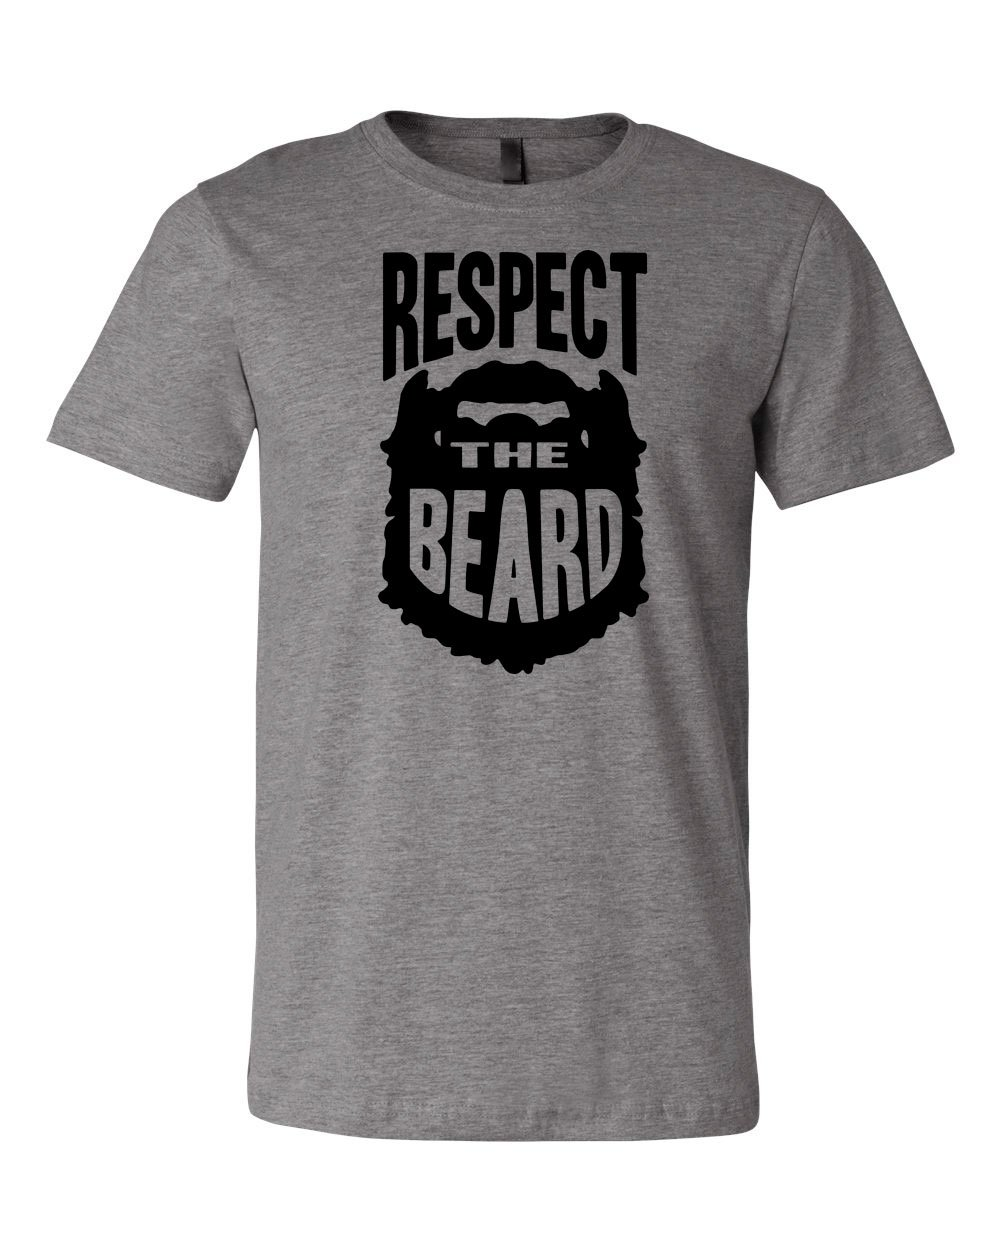 Respect the Beard Tee | Wrestle Around in This T-shirt (Large, Deep Heather)